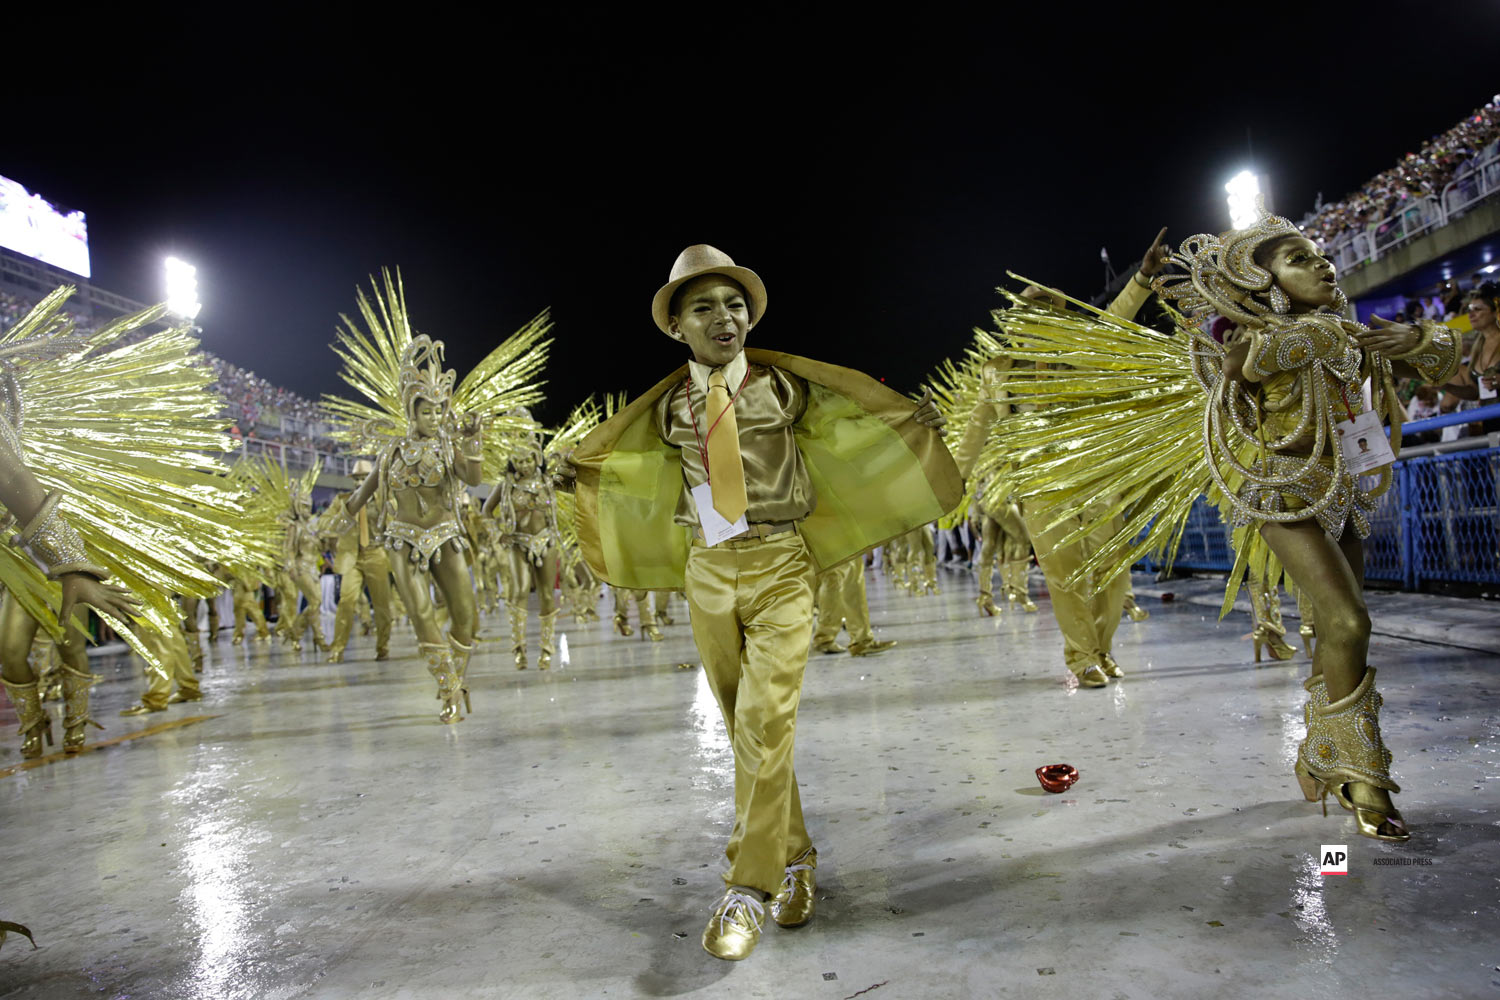 Performers from the Viradouro samba school parade during Carnival celebrations at the sambadrome in Rio de Janeiro, Brazil, Sunday, March 3, 2019. (AP Photo/Silvia Izquierdo)